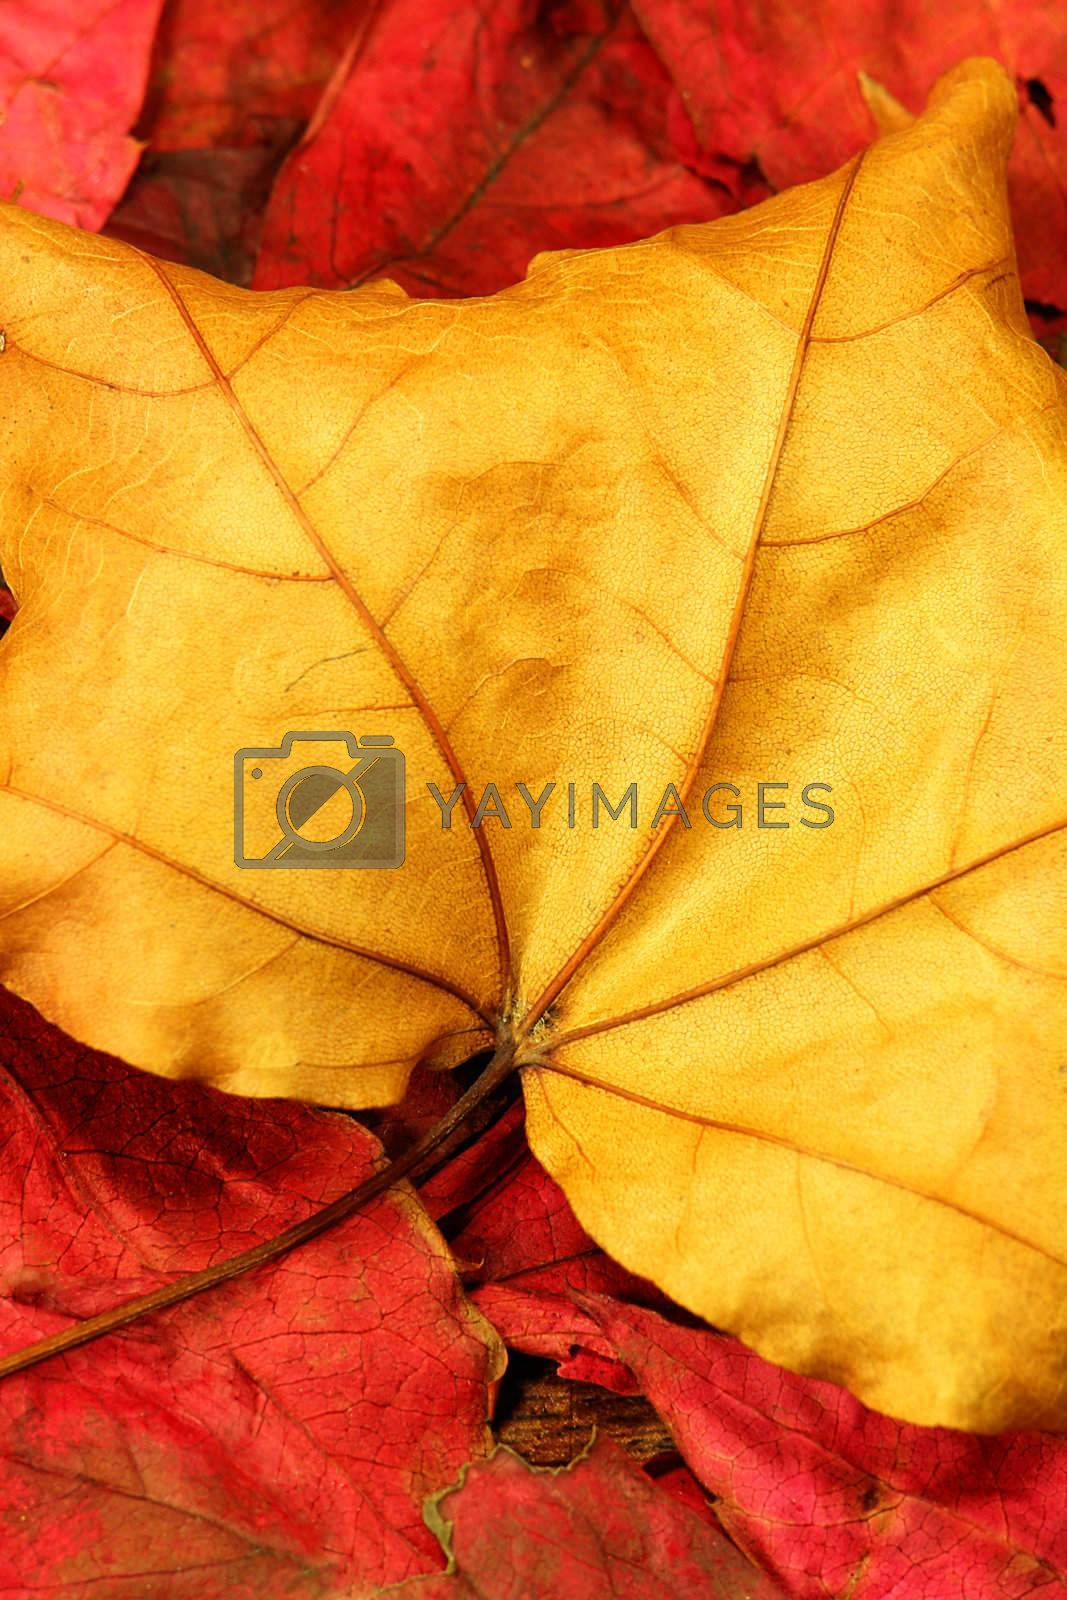 Autumn Leaves 01 by massman